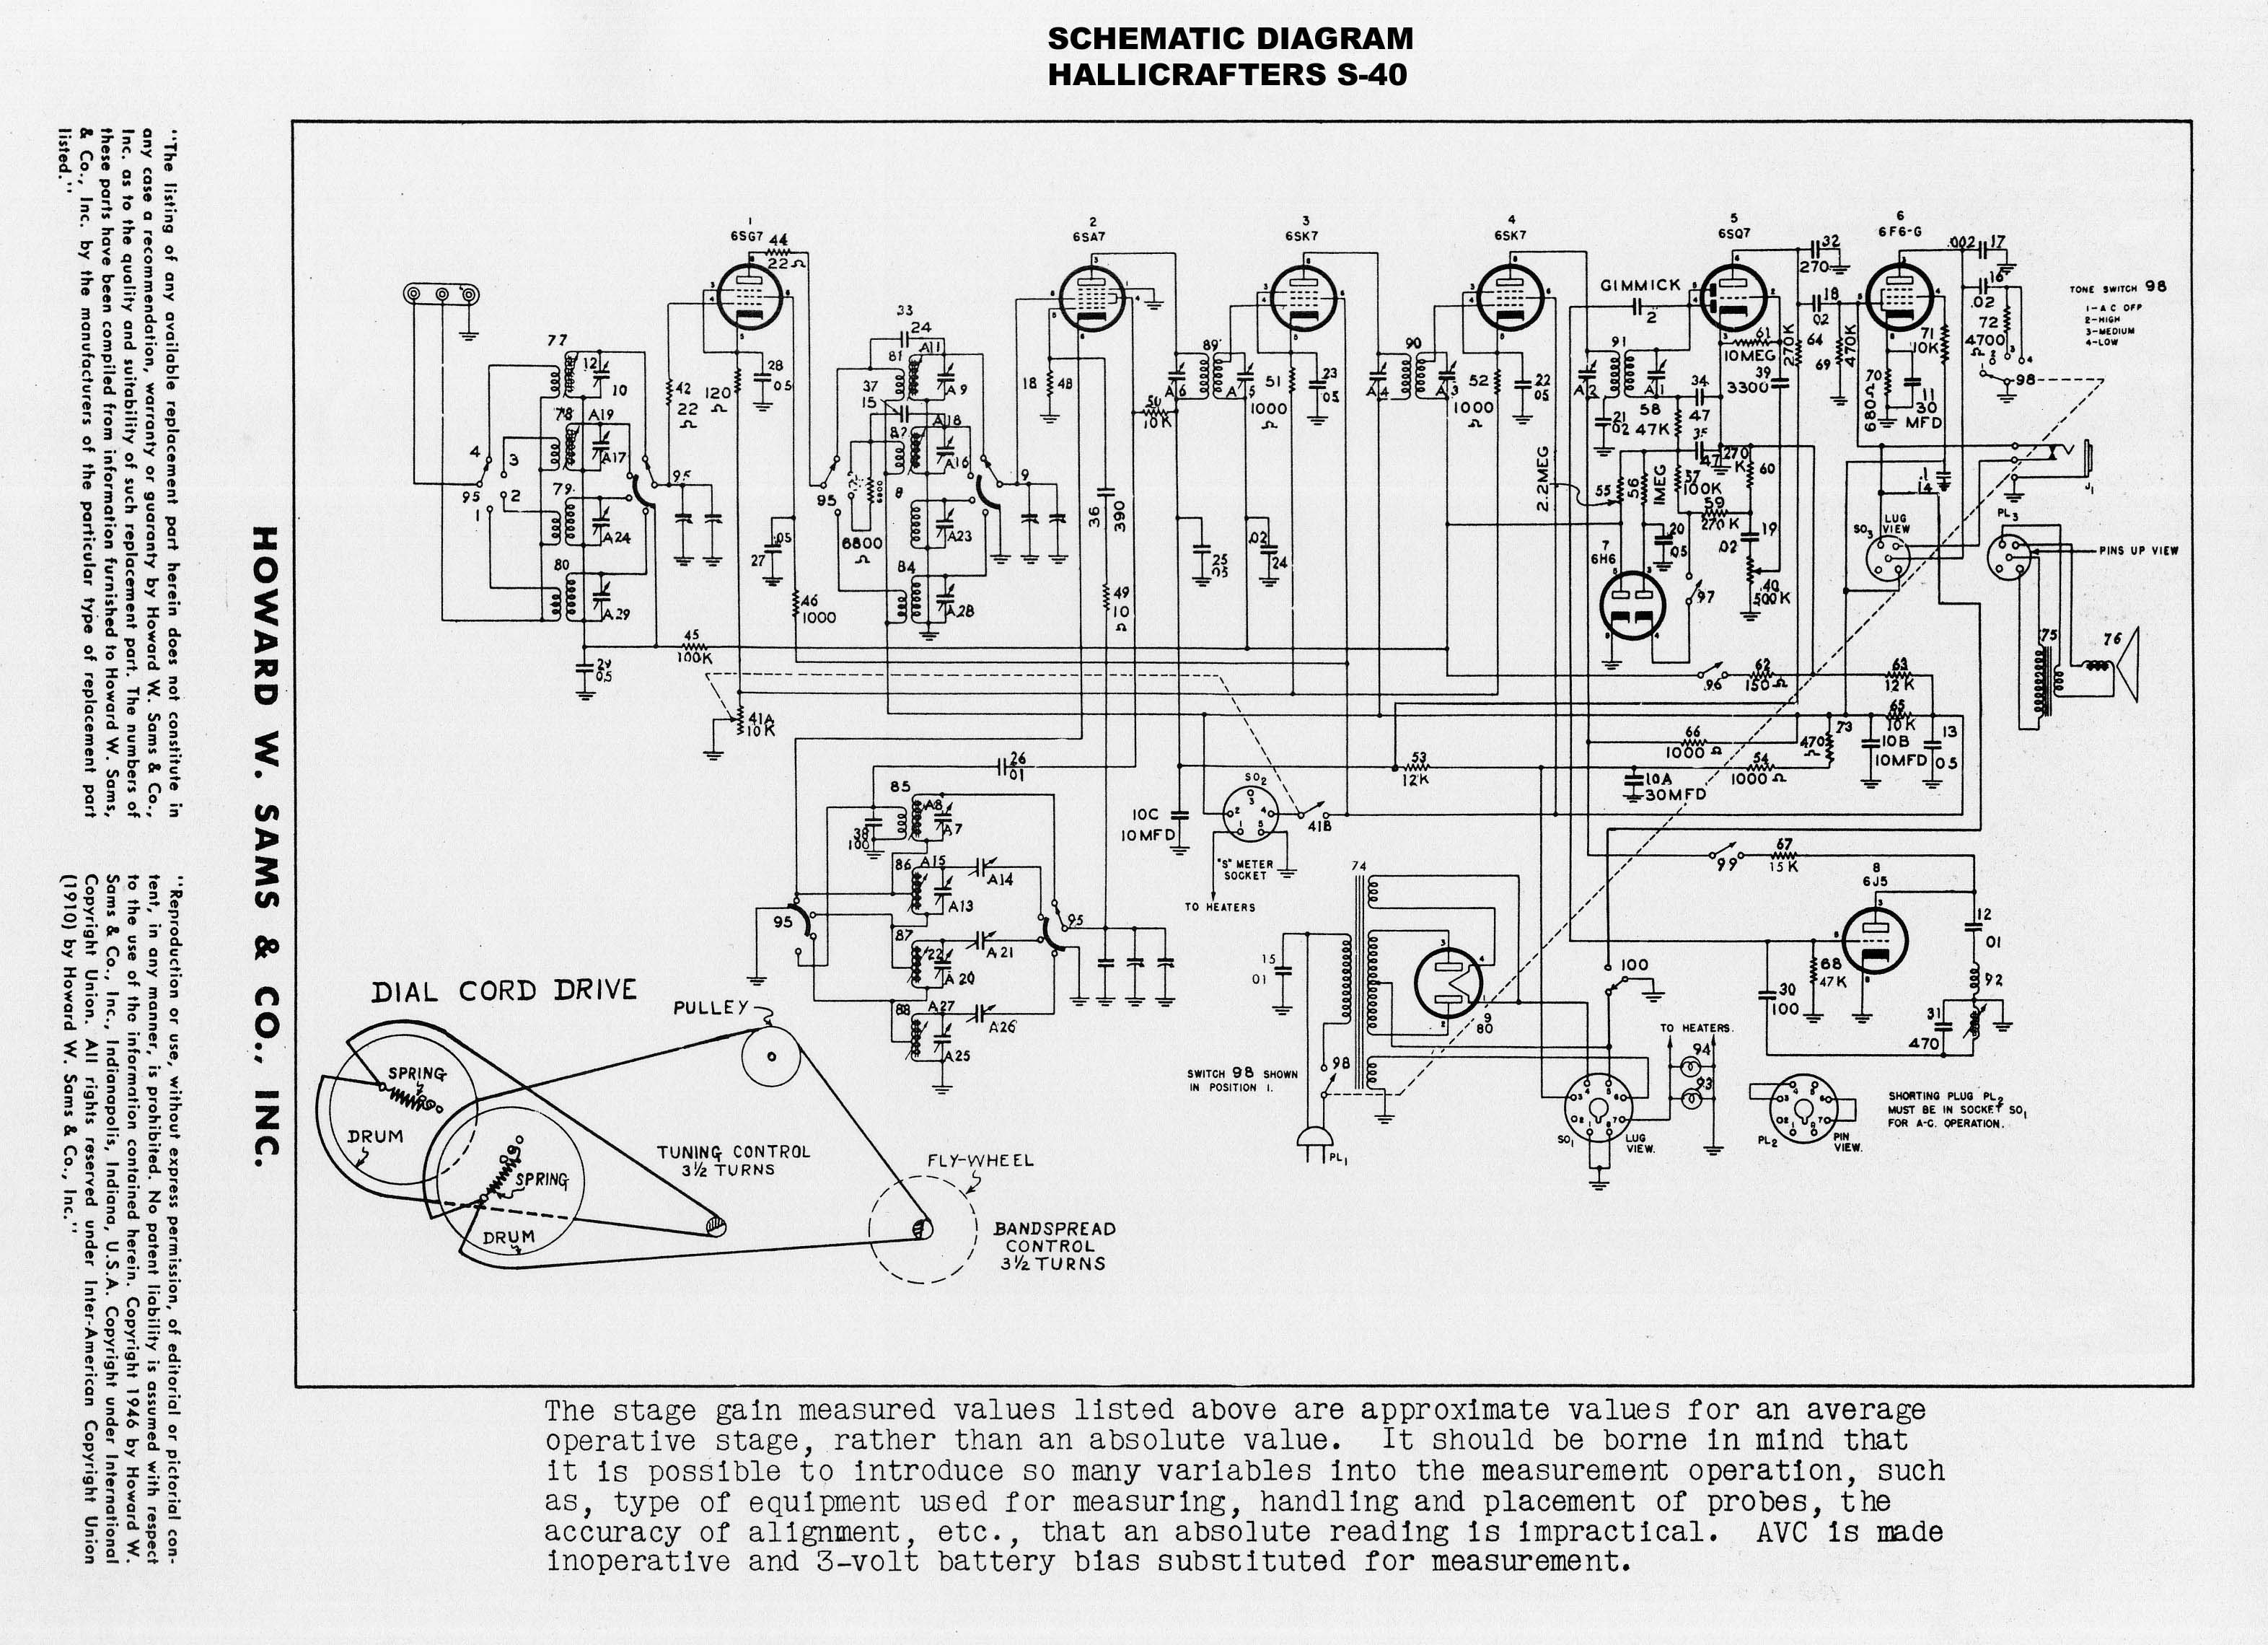 dta s40 wiring diagram capacitor 1946 1949 hallicrafters quotmodel s 40 quot general coverage